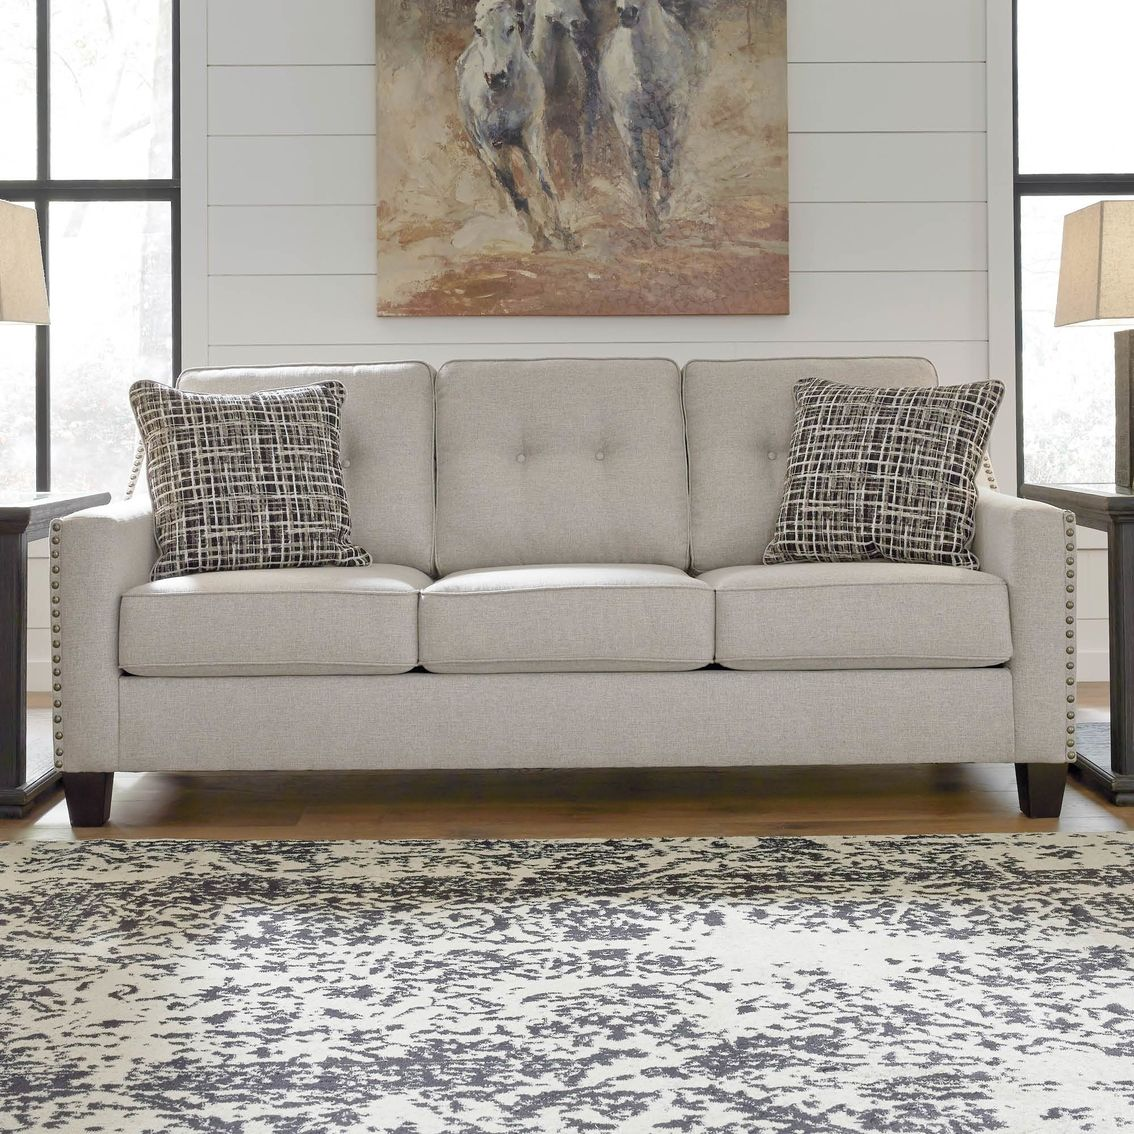 Tremendous Benchcraft Marrero Sofa Fred Sofa Queen Sofa Sleeper Pabps2019 Chair Design Images Pabps2019Com